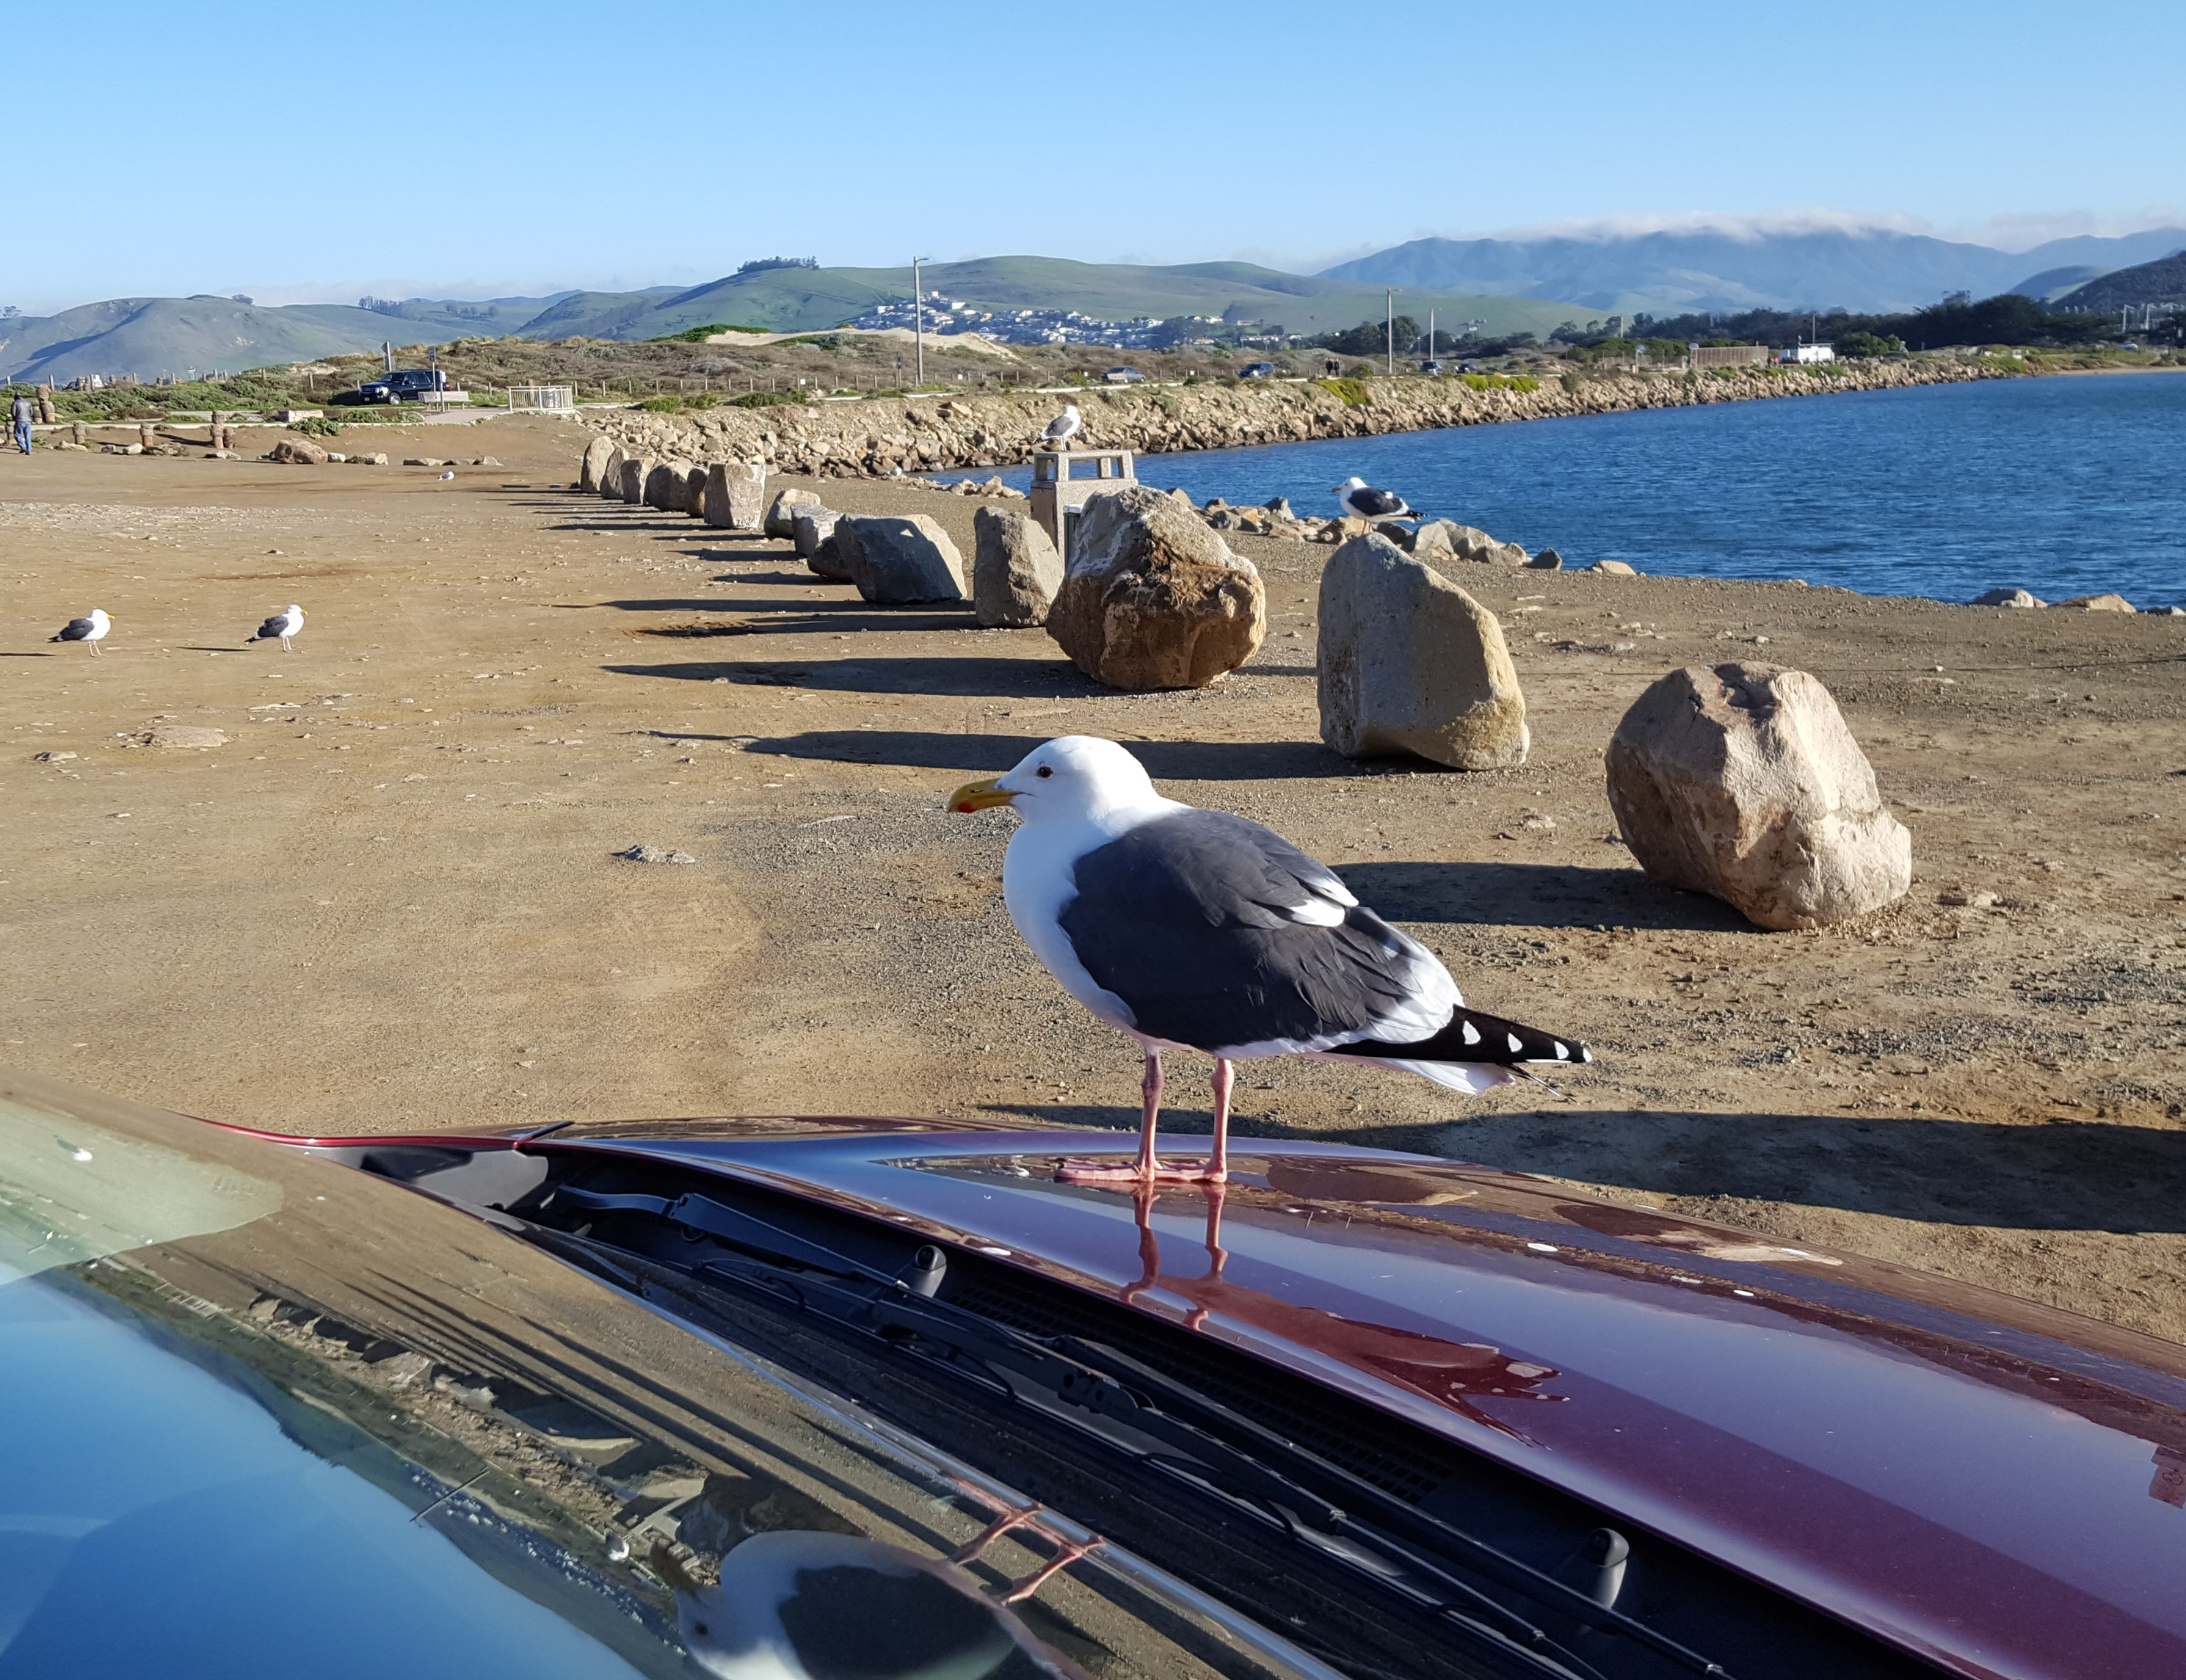 Gull sitting on car hood, Morro Bay, CA